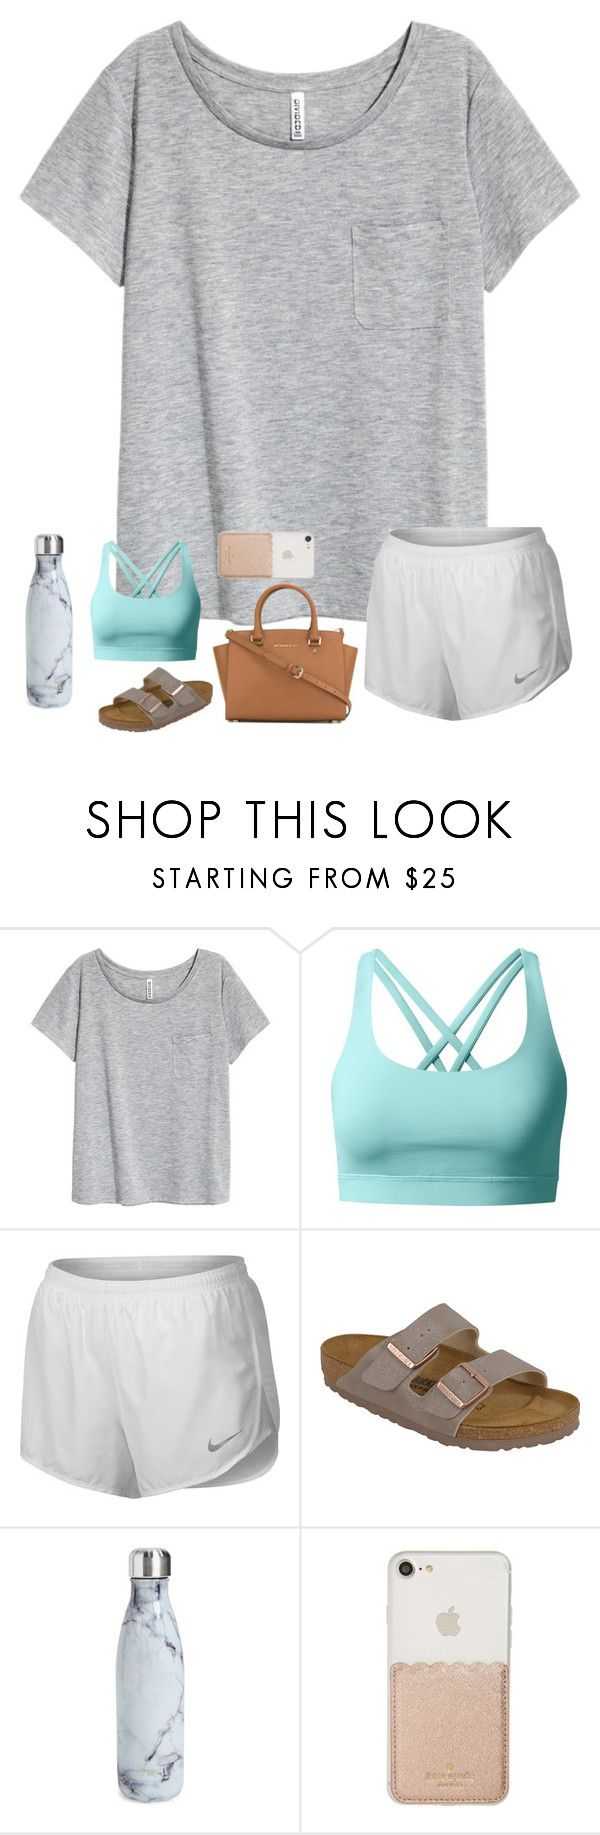 """wild thoughts"" by ashton7276 on Polyvore featuring lululemon, NIKE, Birkenstock, S'well, Kate Spade and MICHAEL Michael Kors"